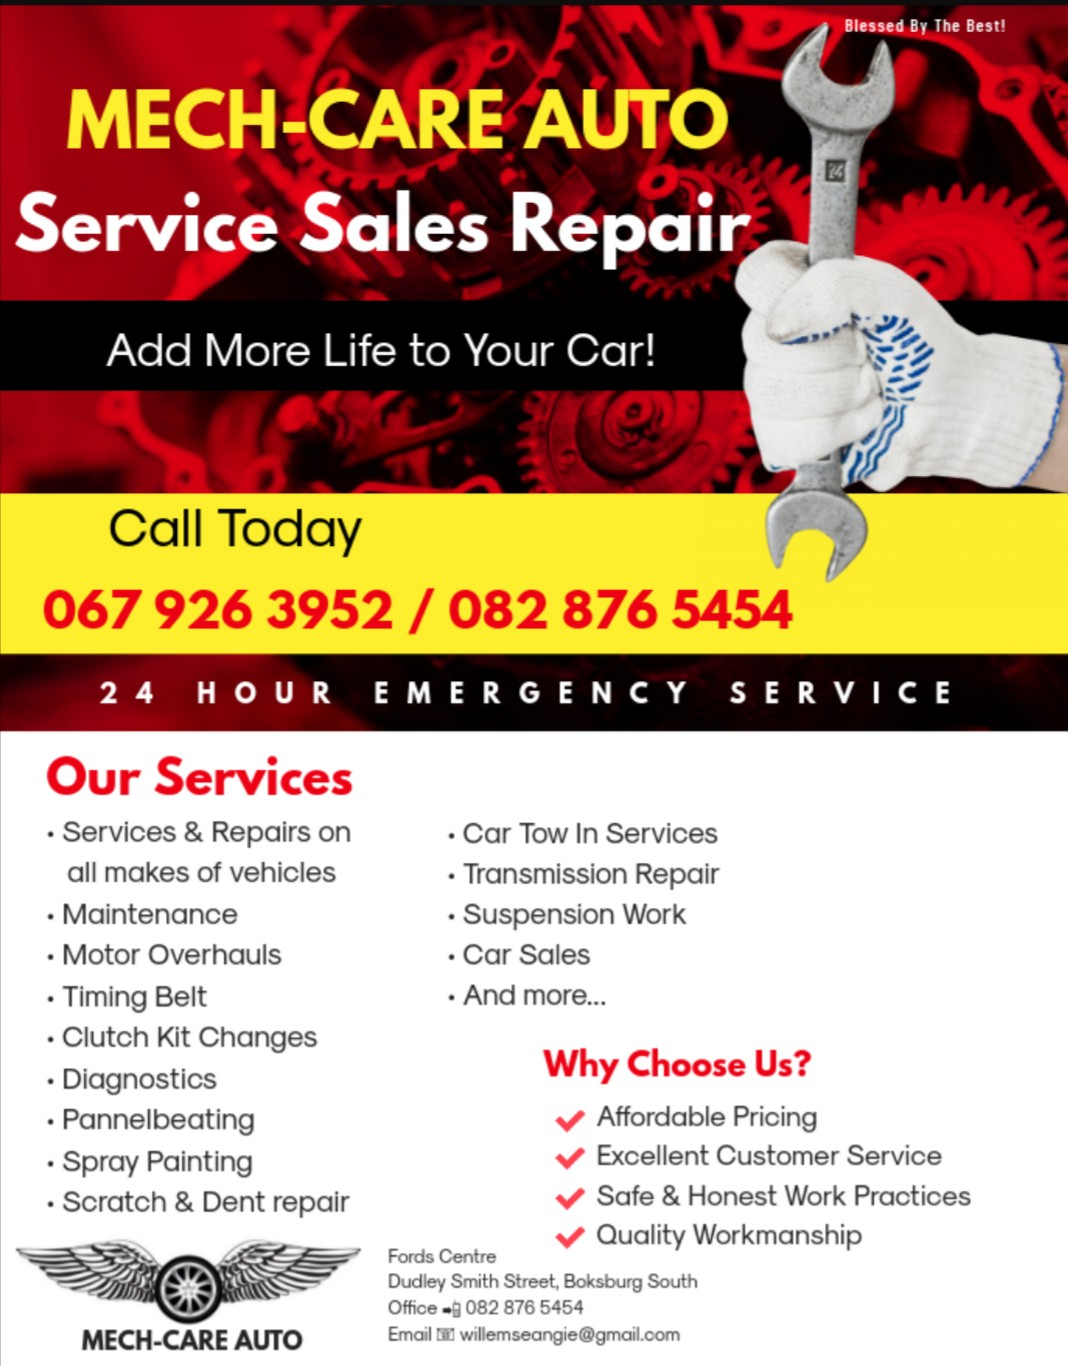 Vehicle services sales and repairs